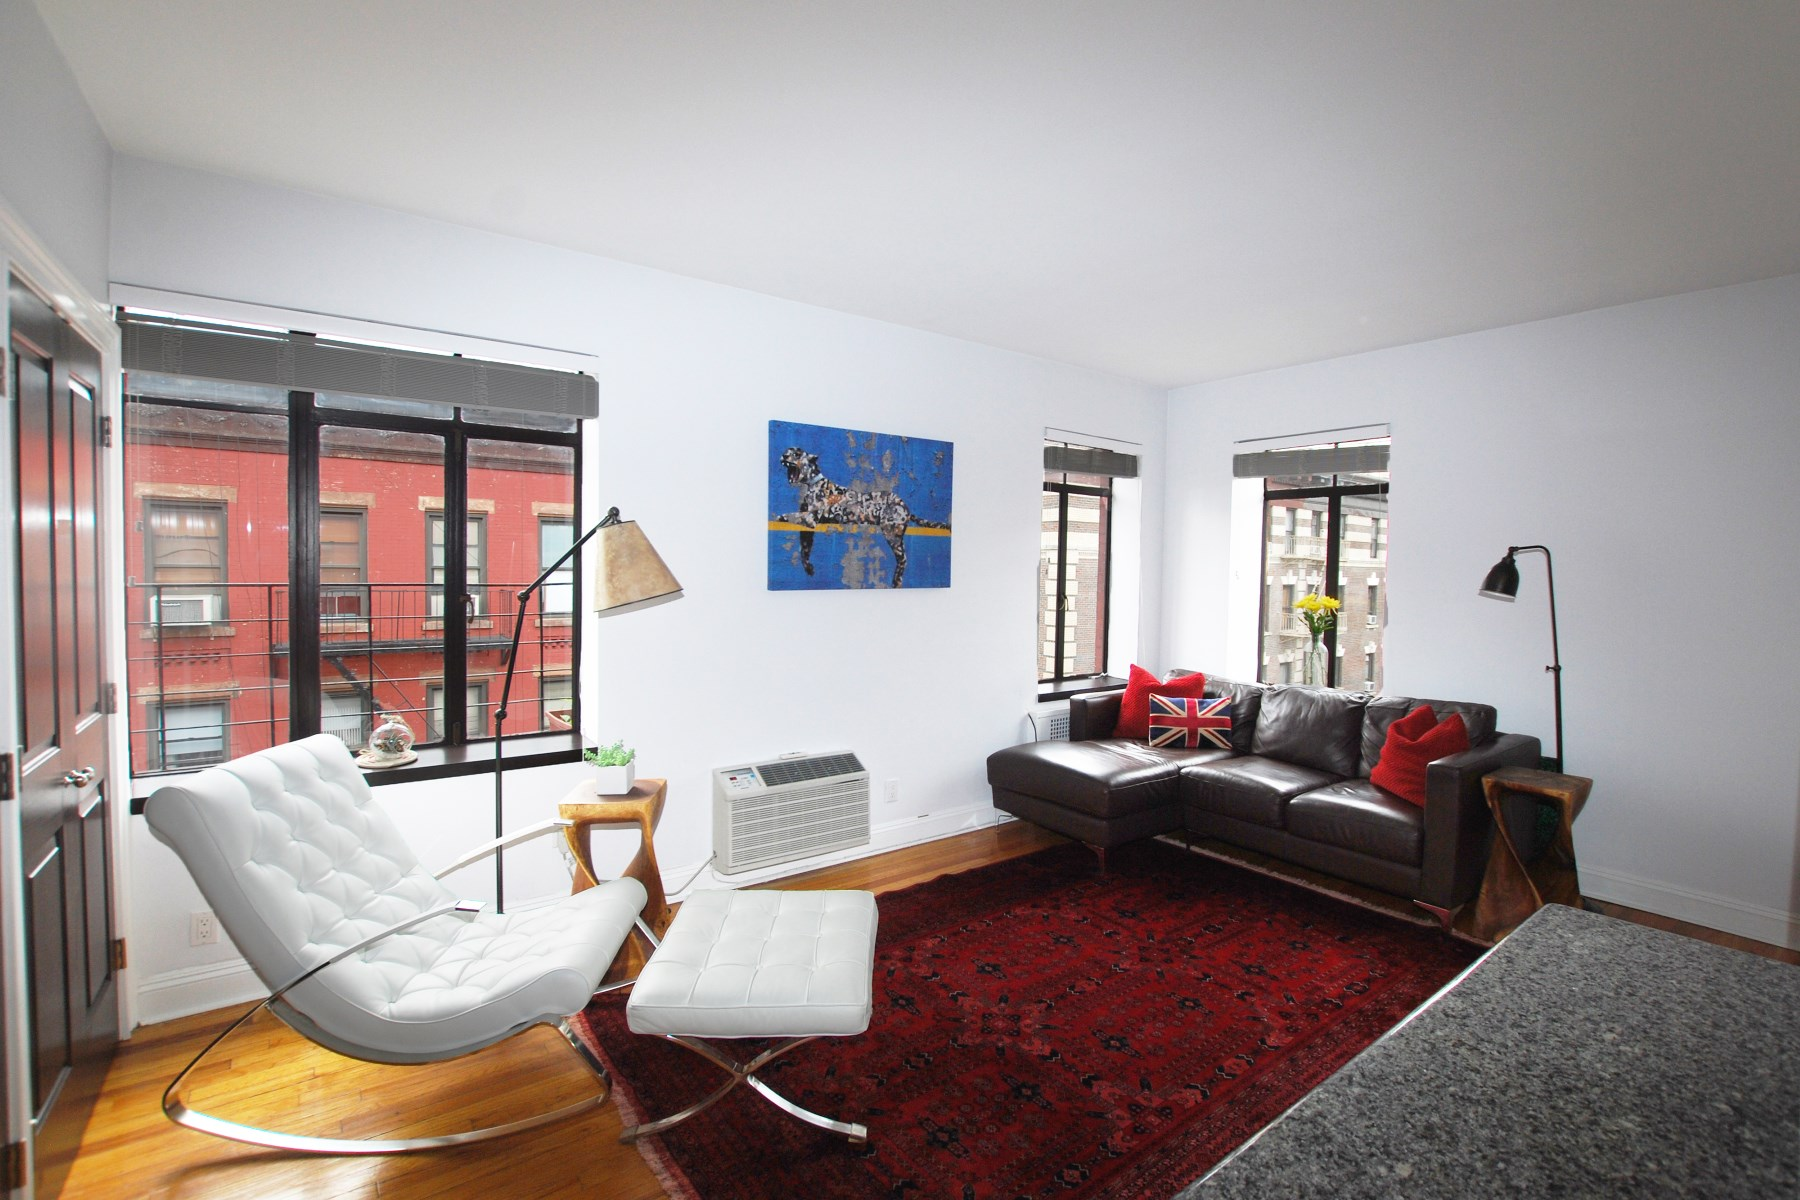 Co-op for Sale at 32 Downing Street, Apt. 5D 32 Downing Street Apt 5D New York, New York, 10014 United States